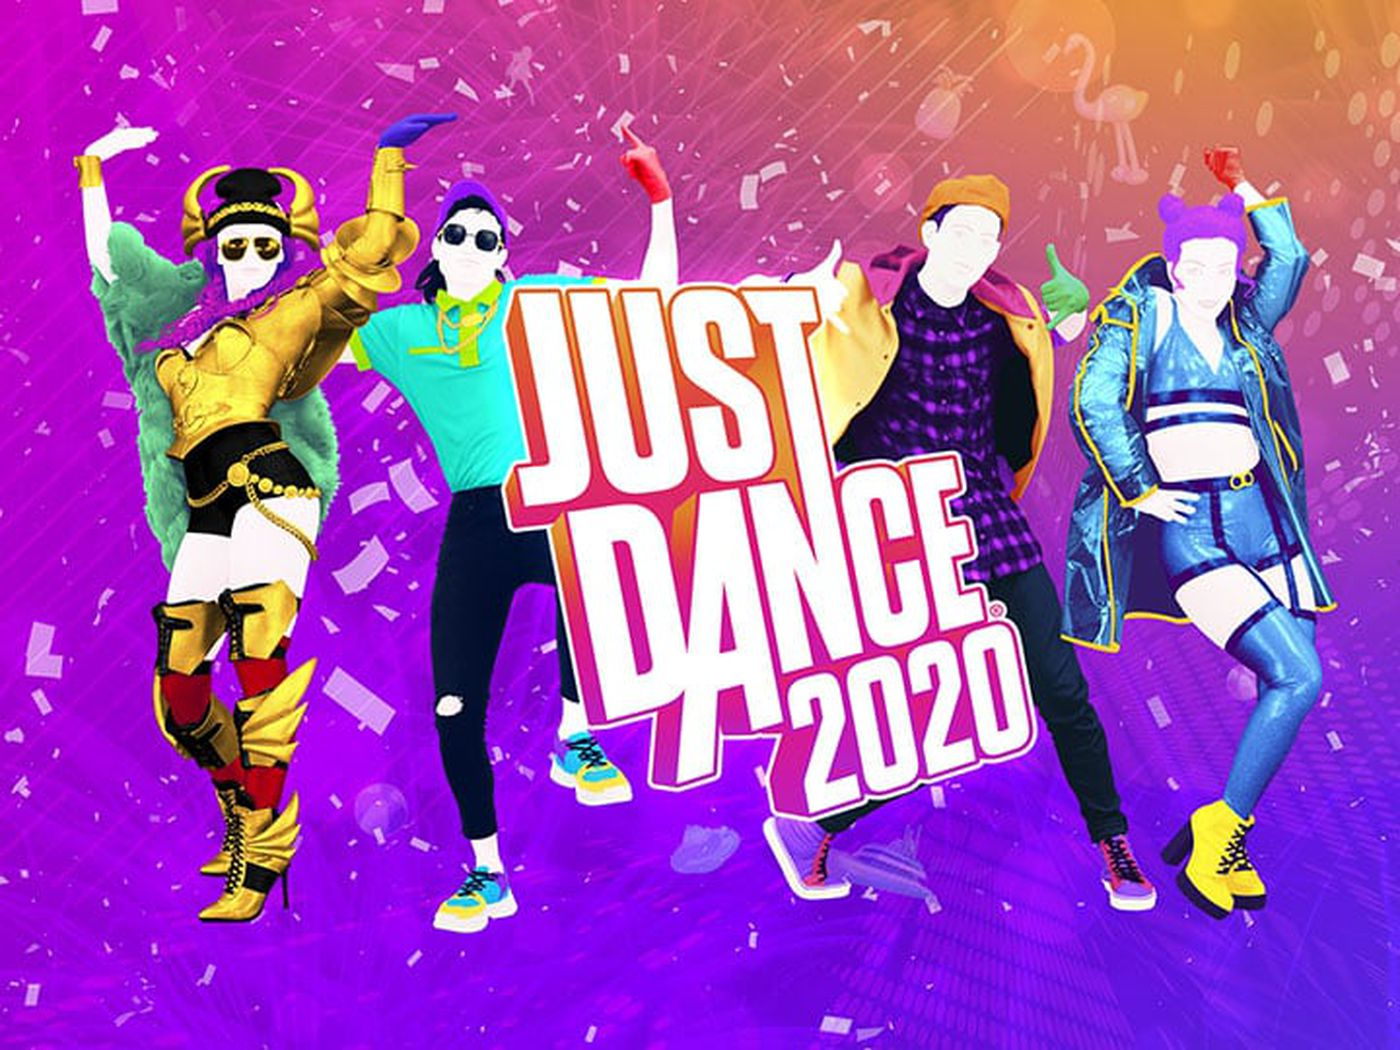 Reddit Costume Ideas 2020 Just Dance 2020 is not coming to Wii because of its use in